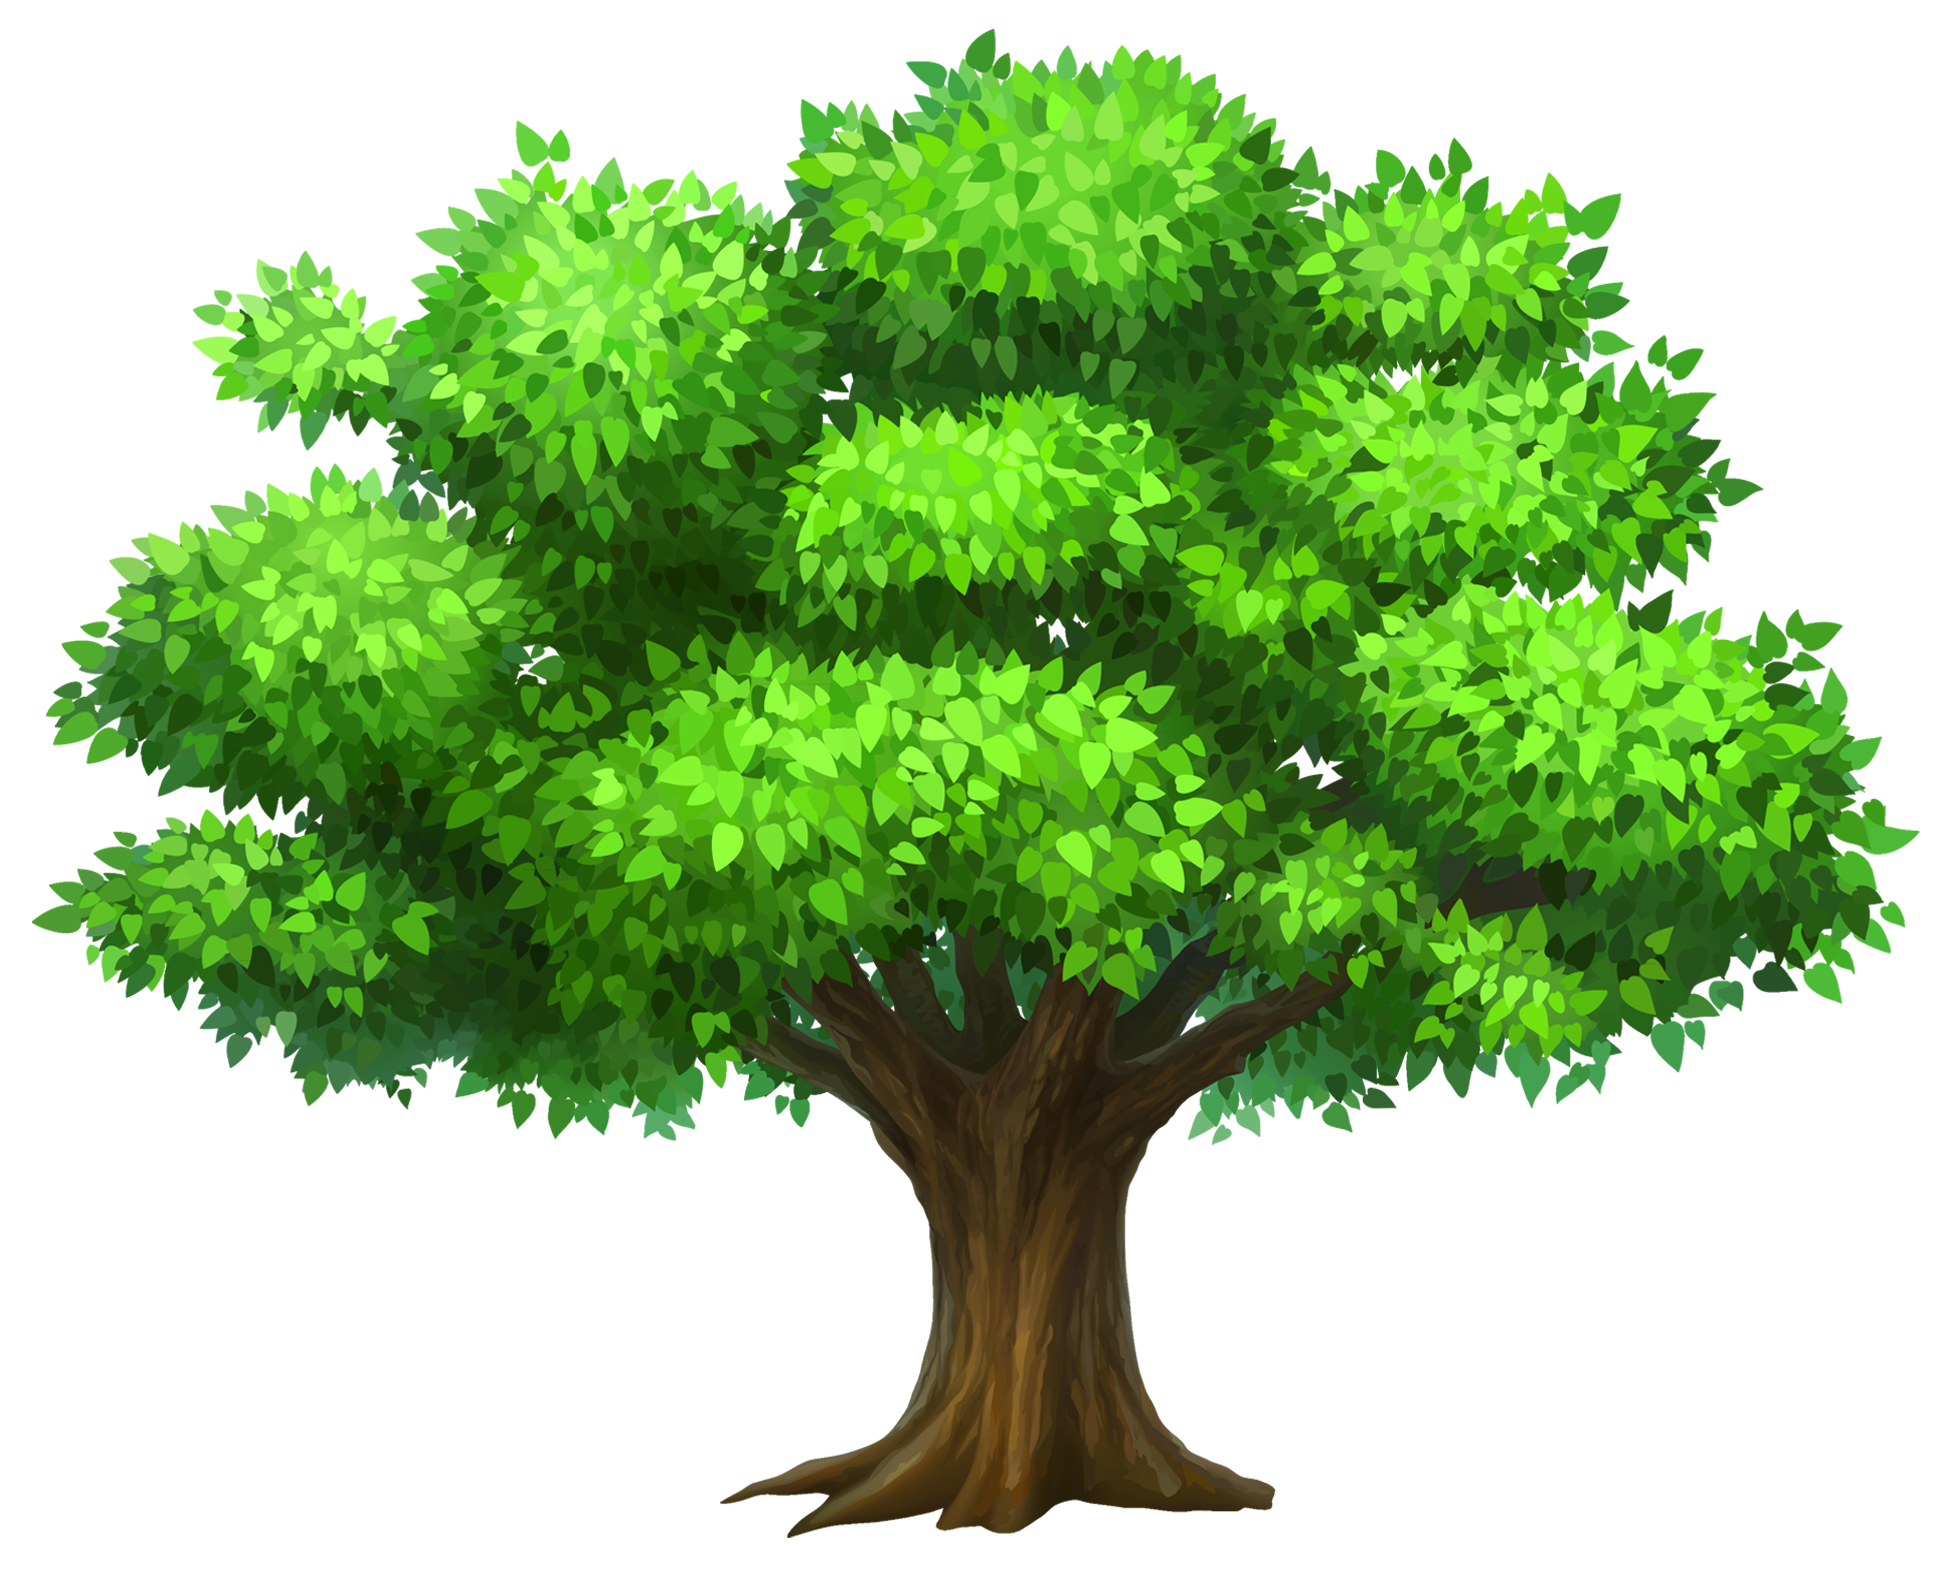 Cartoon png free download. Tree clipart molave